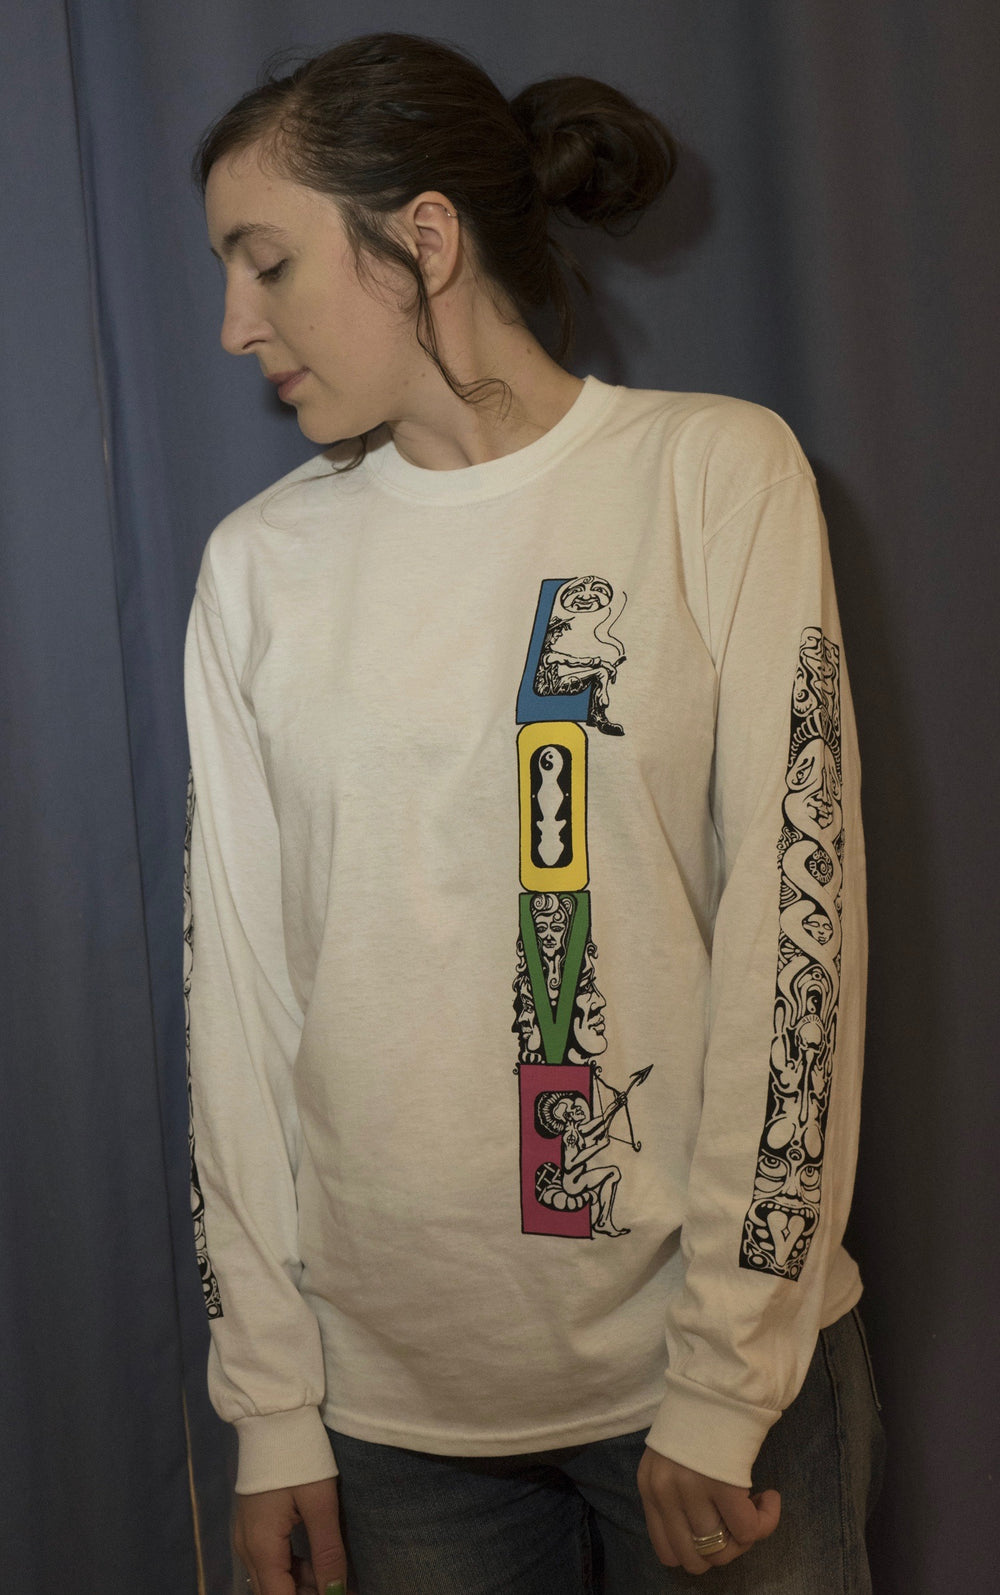 L.O.V.E. Long Sleeve Tee